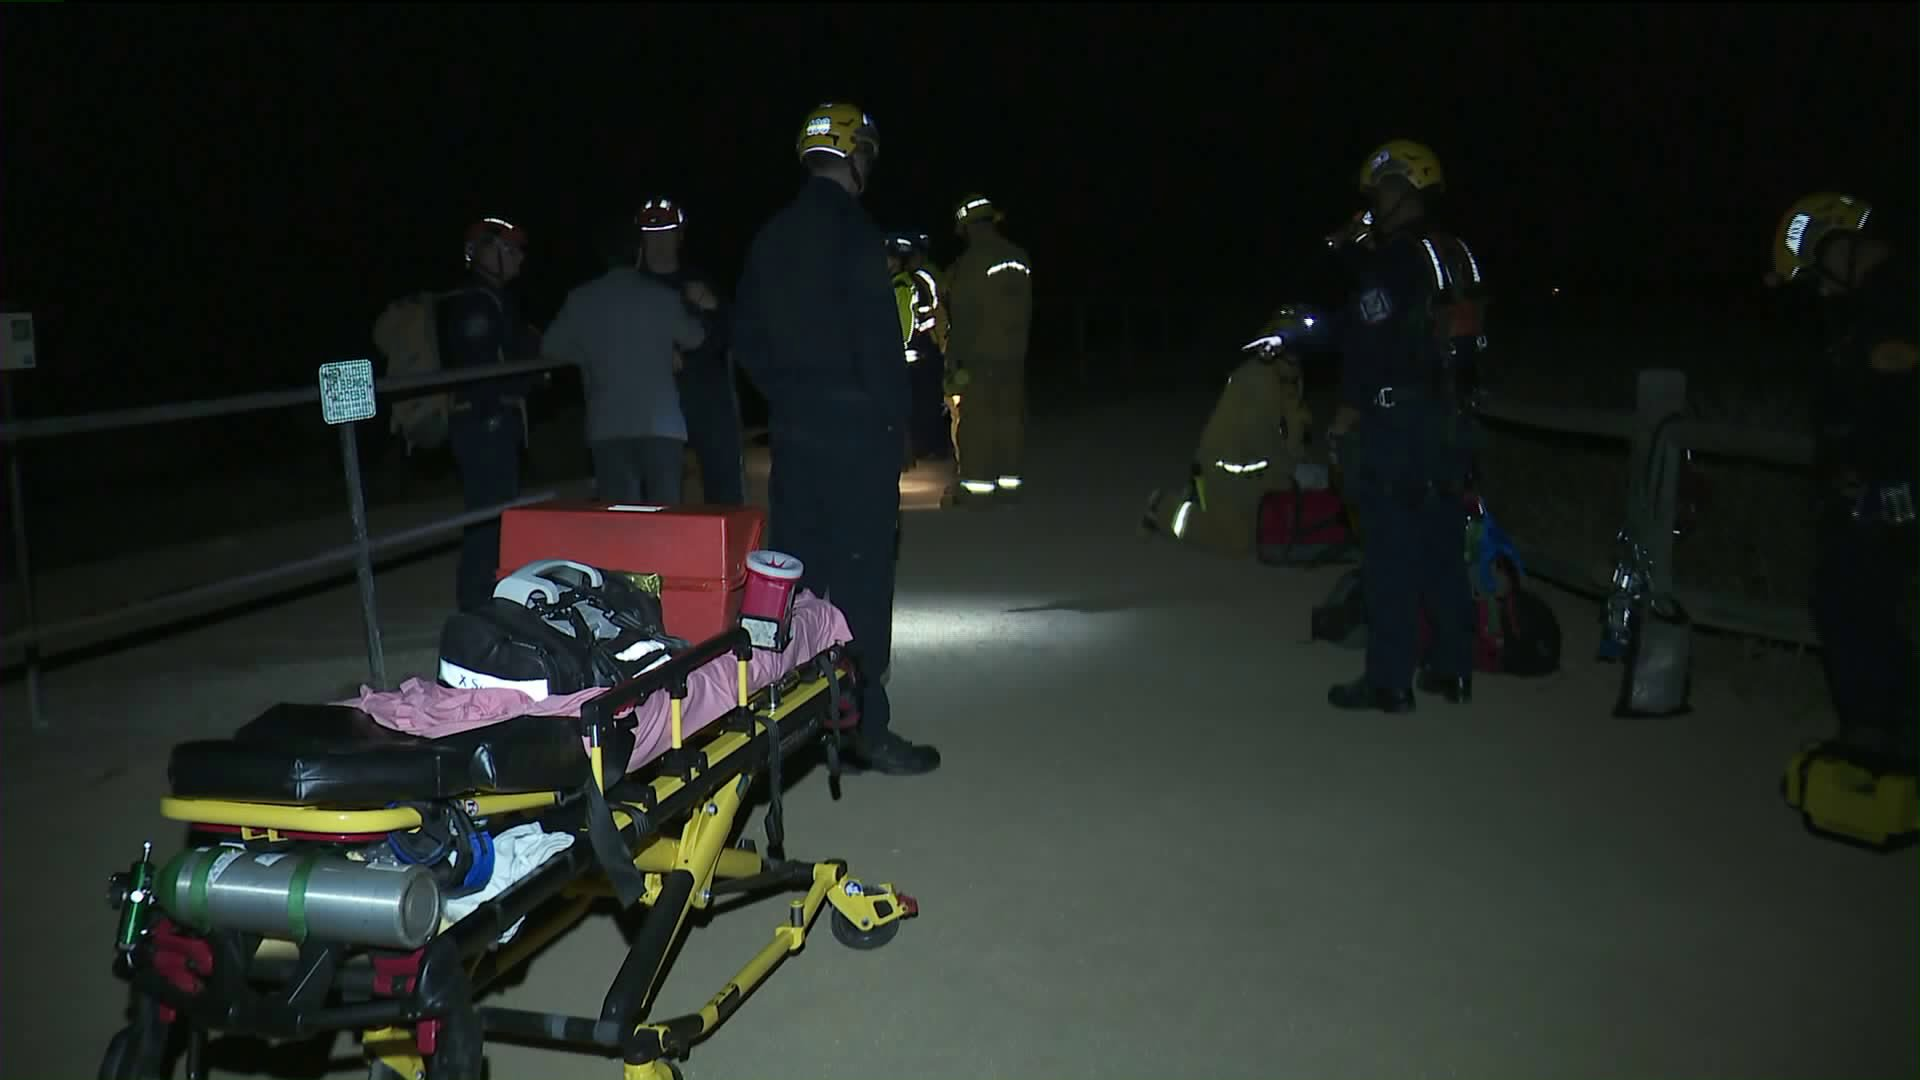 Firefighters respond to a rescue in Rancho Palos Verdes on June 7, 2018. (Credit: KTLA)